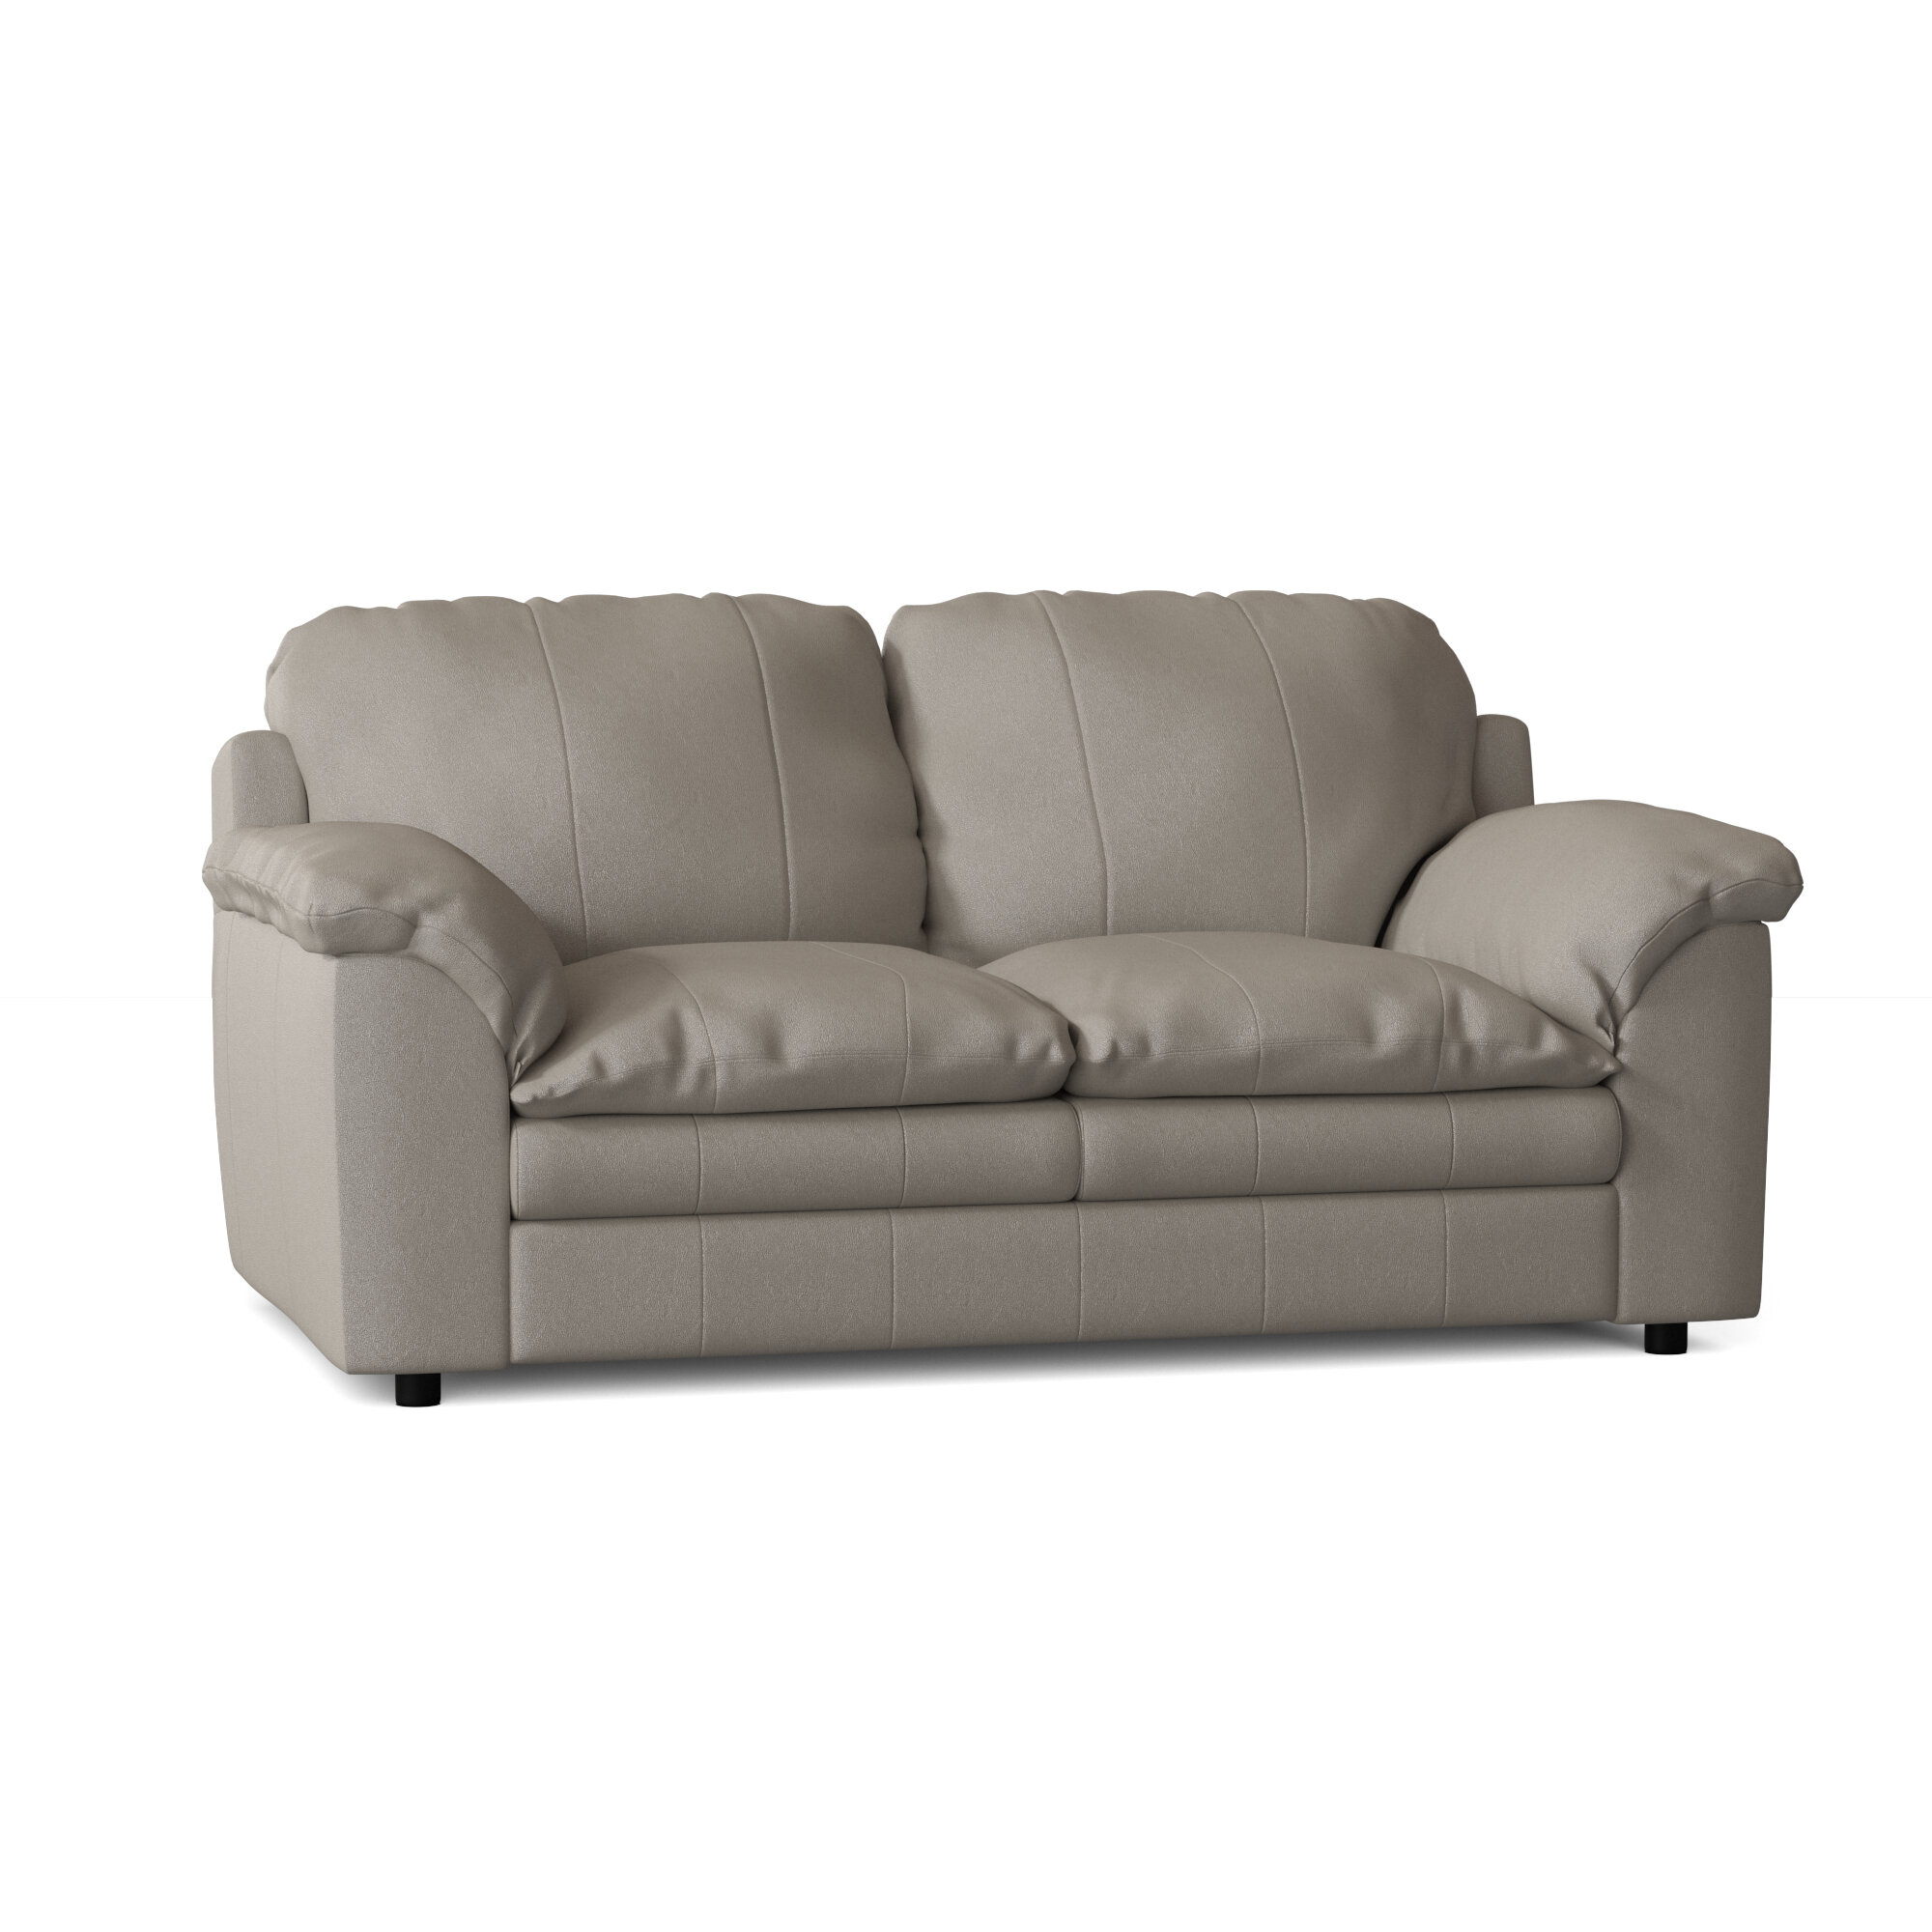 Linen Pillow Top Arm Sofas You Ll Love In 2021 Wayfair